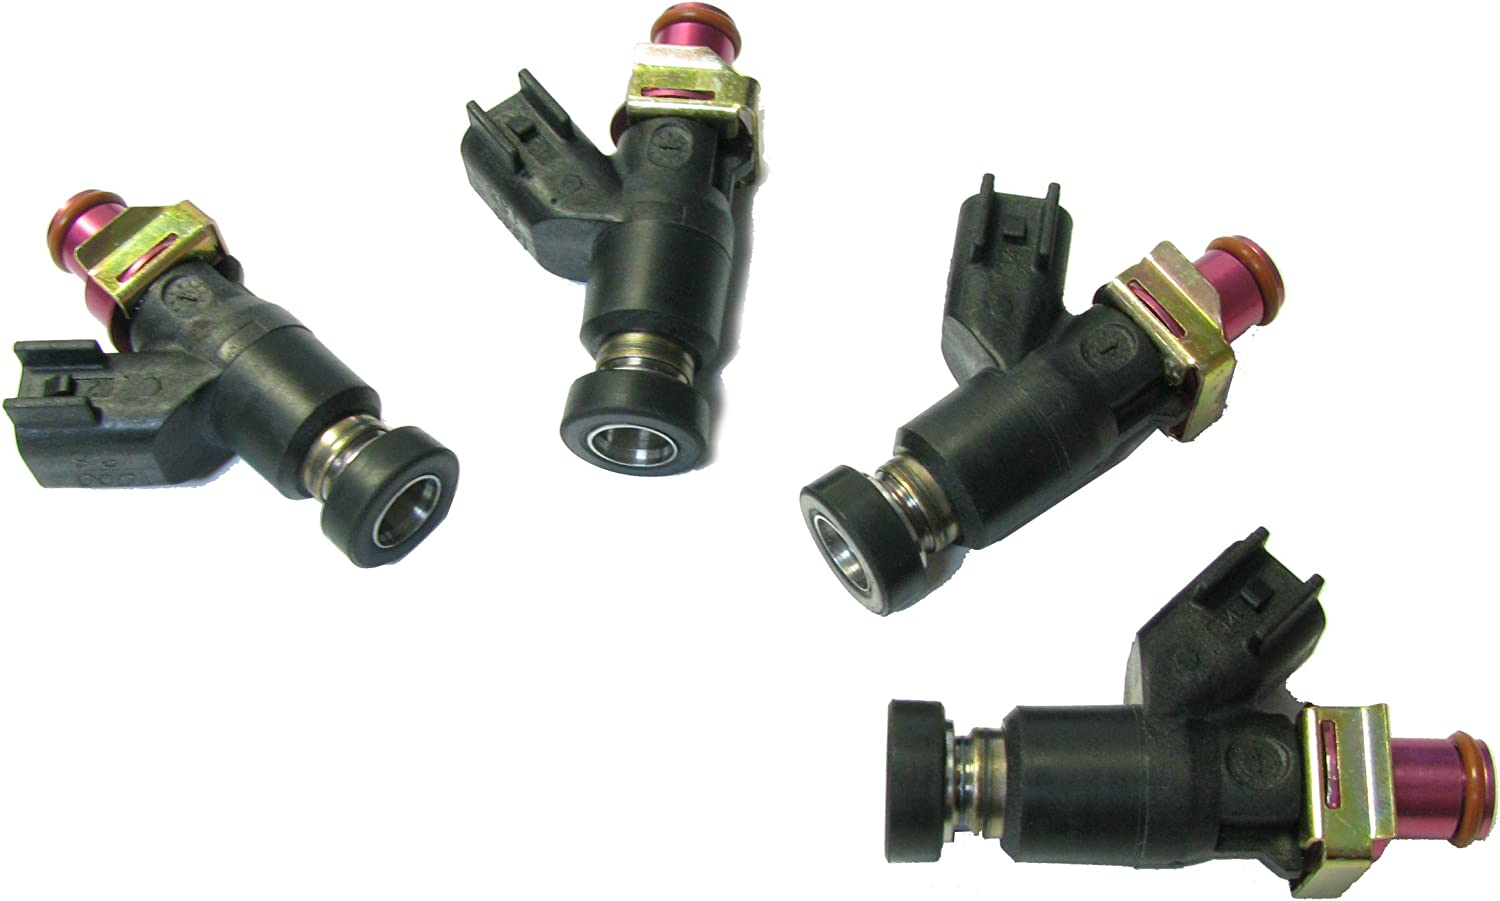 Set of 4 1000cc High Performance Fuel Injector, F56010-1000-4 AUS Injection